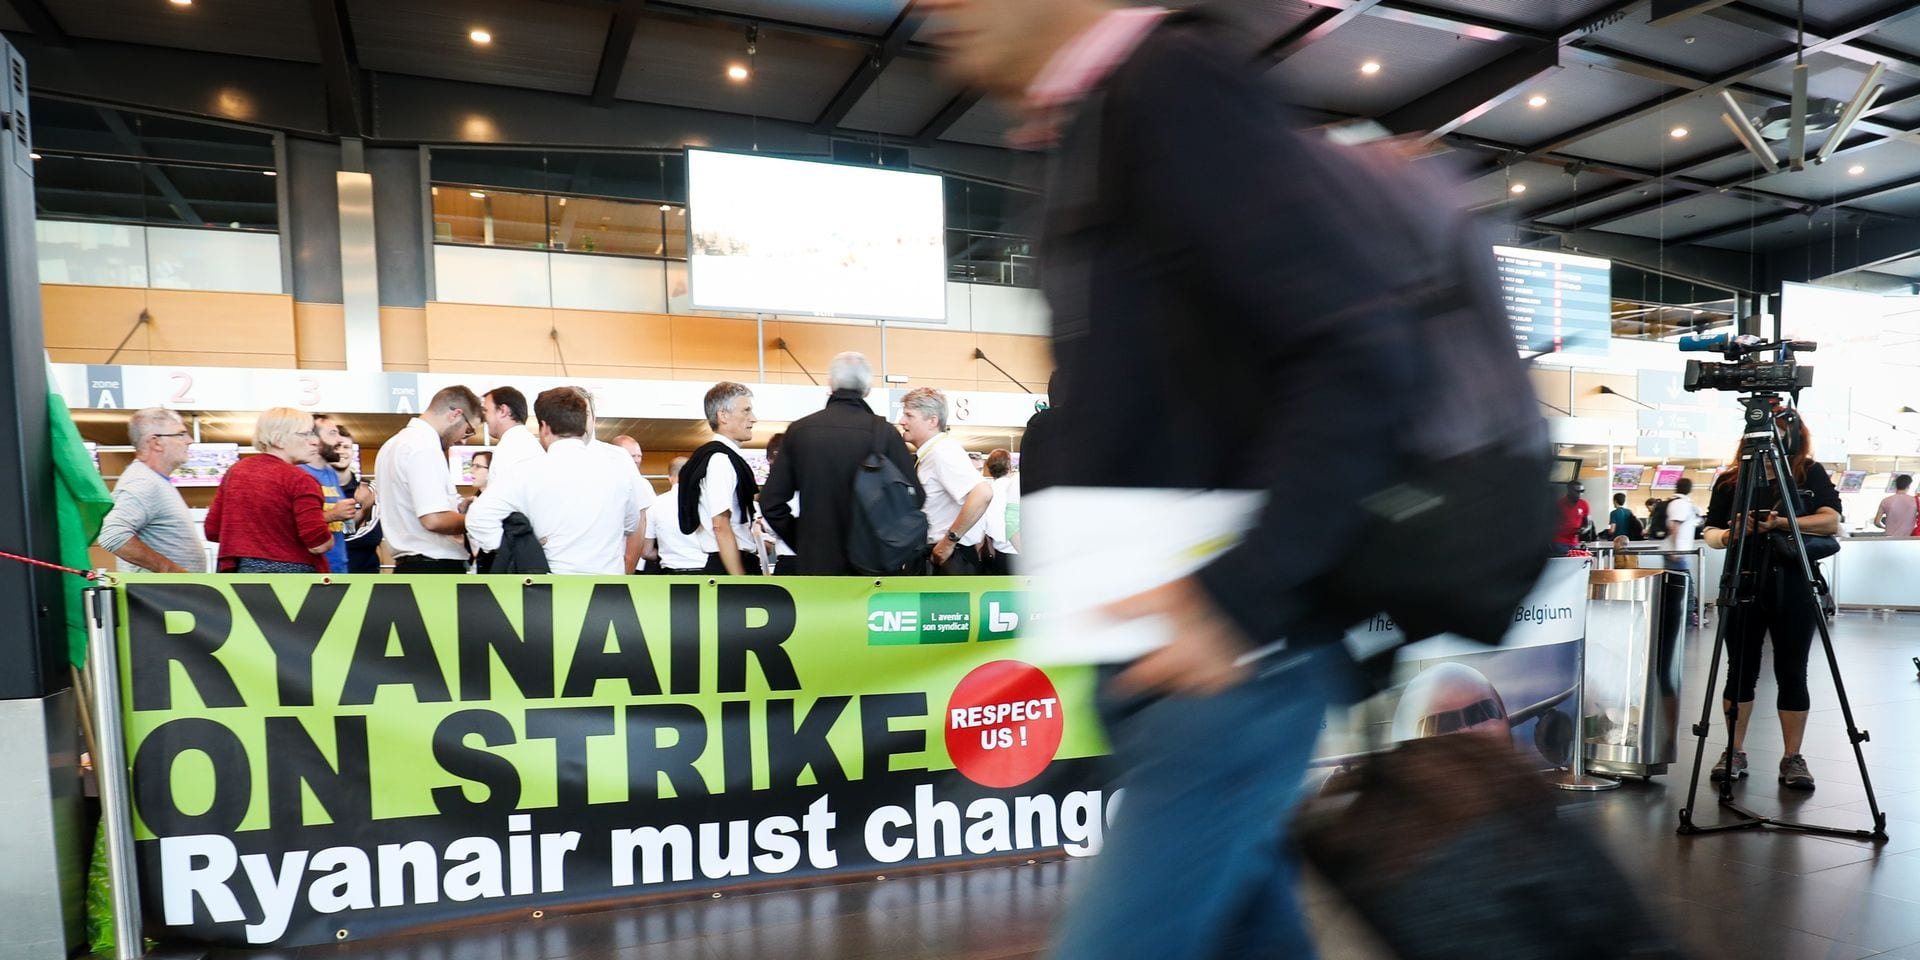 Illustration picture shows a banner saying Ryanair must change, Ryanair on strike, inside Charleroi airport departure hall, during a strike of pilots of Irish low-cost airline Ryanair in Belgium, Friday 10 August 2018 at Charleroi (Brussels South) airport. Pilots from several countries including Germany, Sweden and Netherlands, are on strike for better rights and the recognition of a union. BELGA PHOTO VIRGINIE LEFOUR